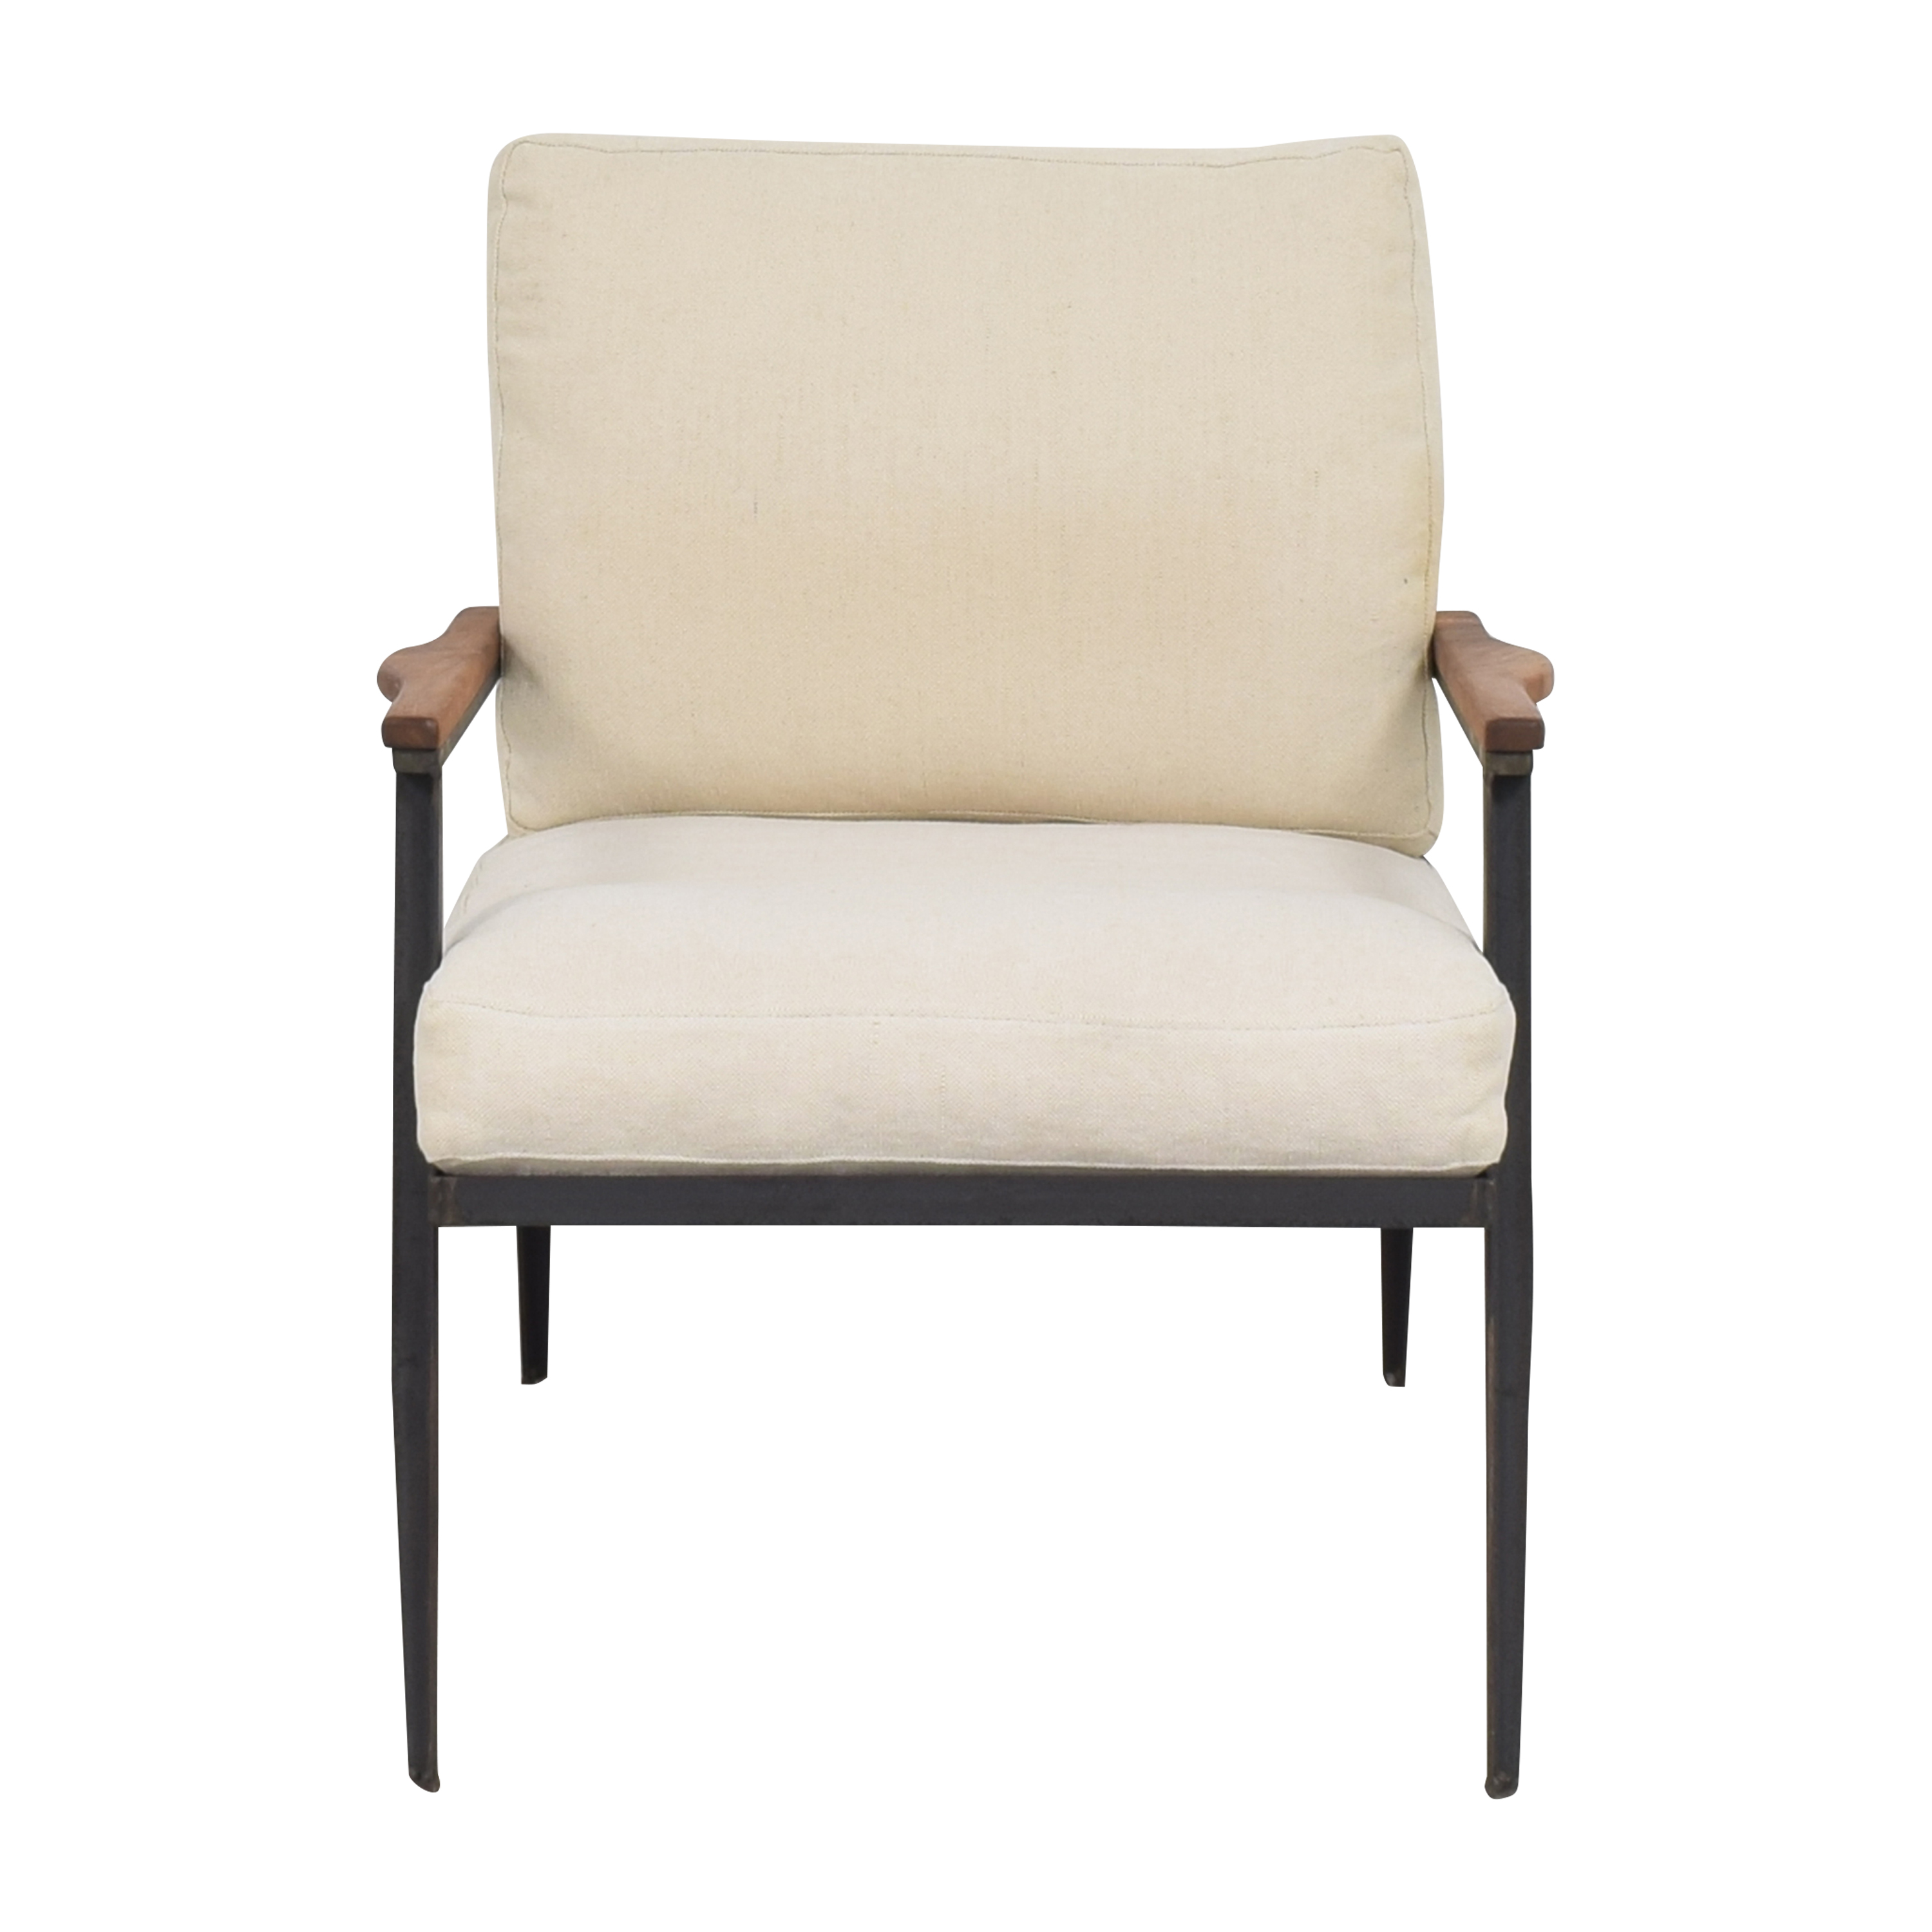 Cisco Brothers Cisco Brothers Alcott Chair price